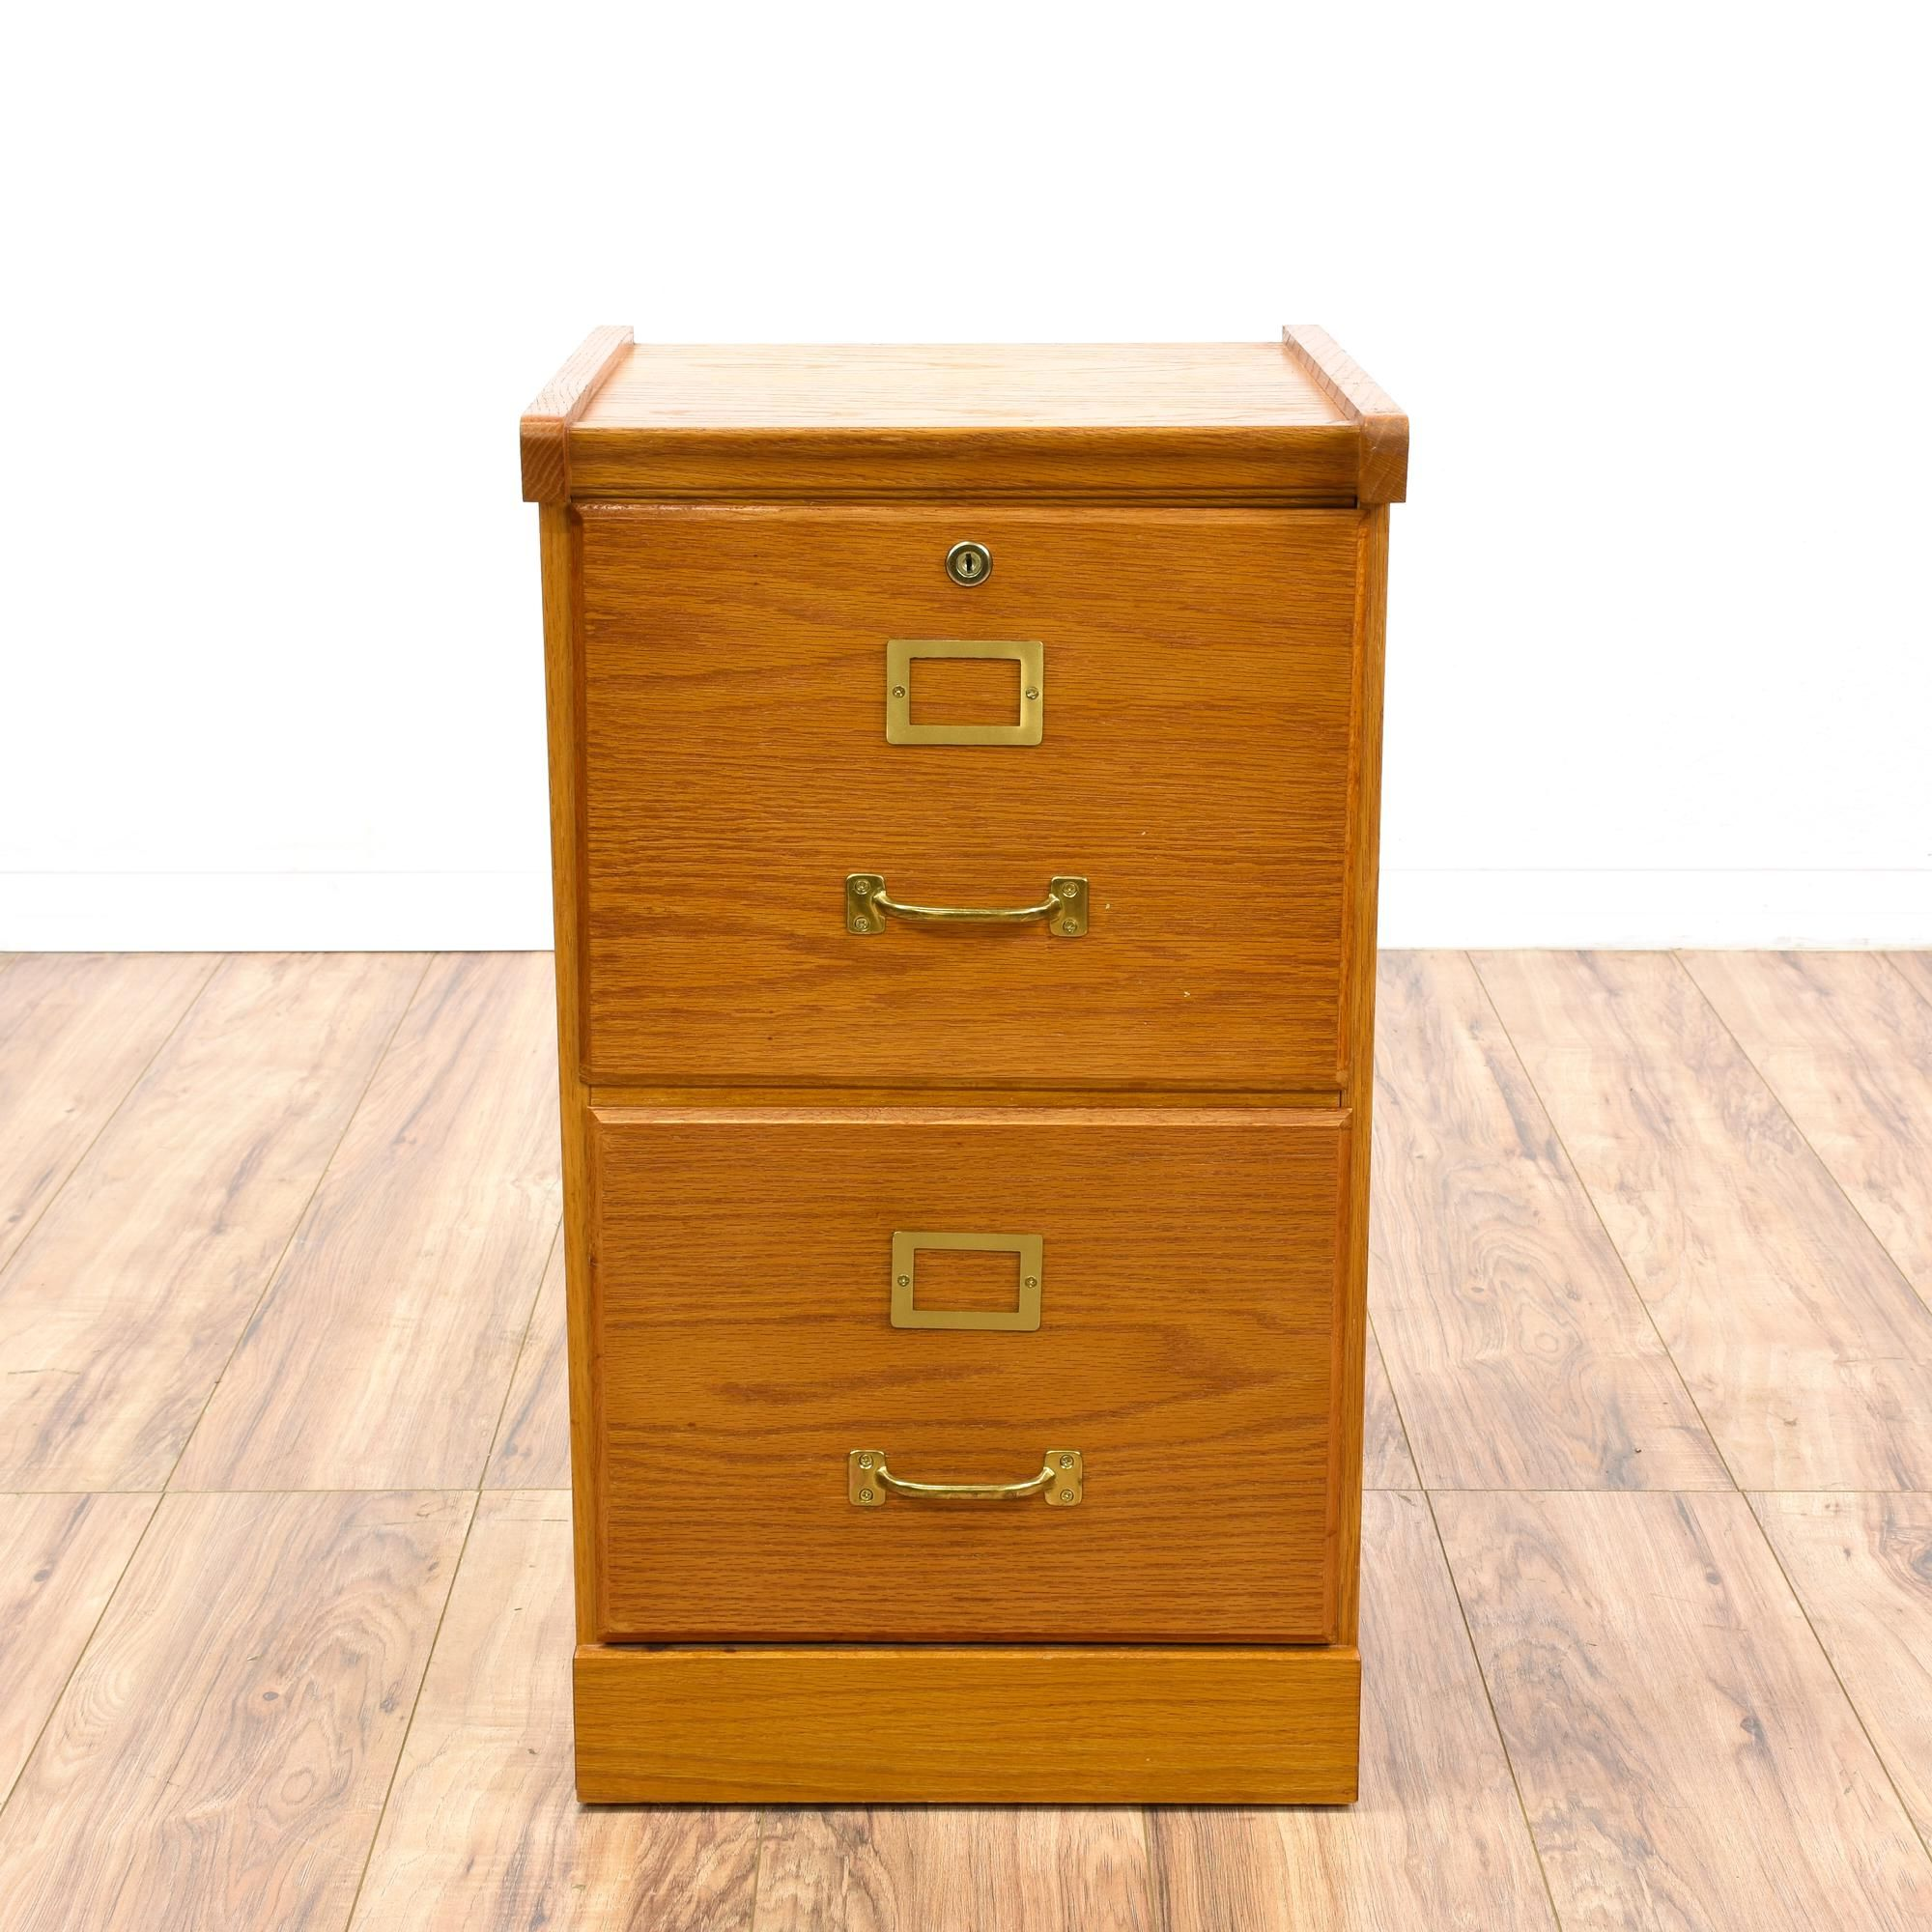 Solid Wood File Cabinet This Filing Cabinet Is Featured In A Solid Wood With An Oak Finish